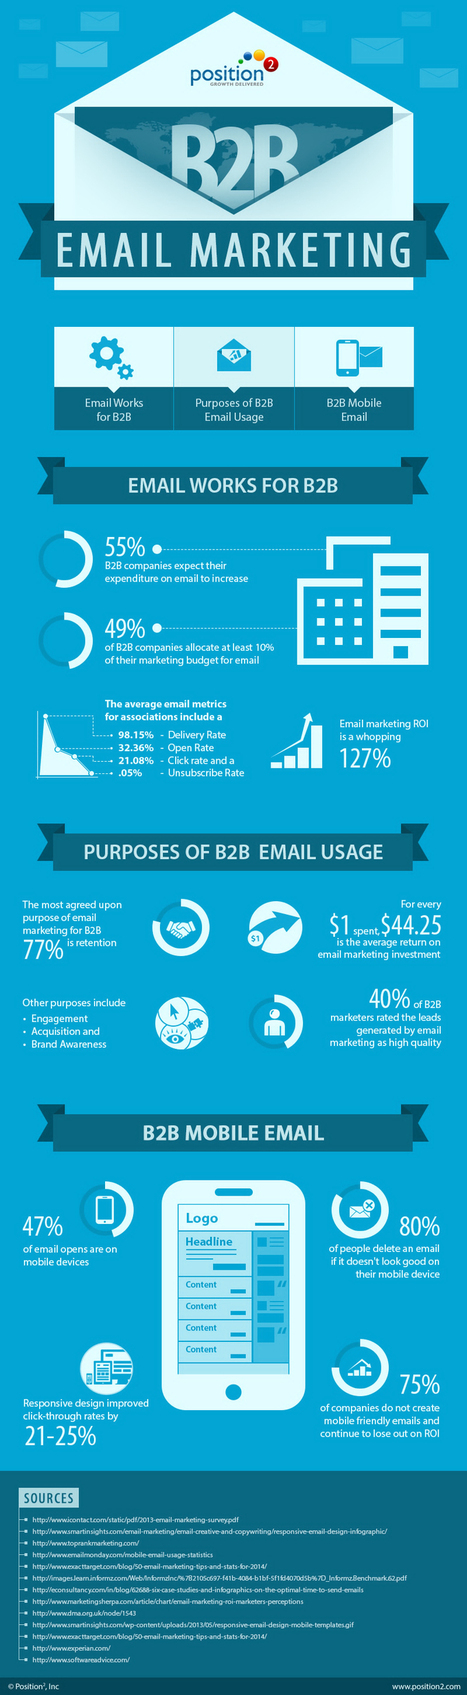 Revealed: Proof That B2B Email Marketing Actually Works - Business 2 Community | Real Estate Marketing & Technology | Scoop.it